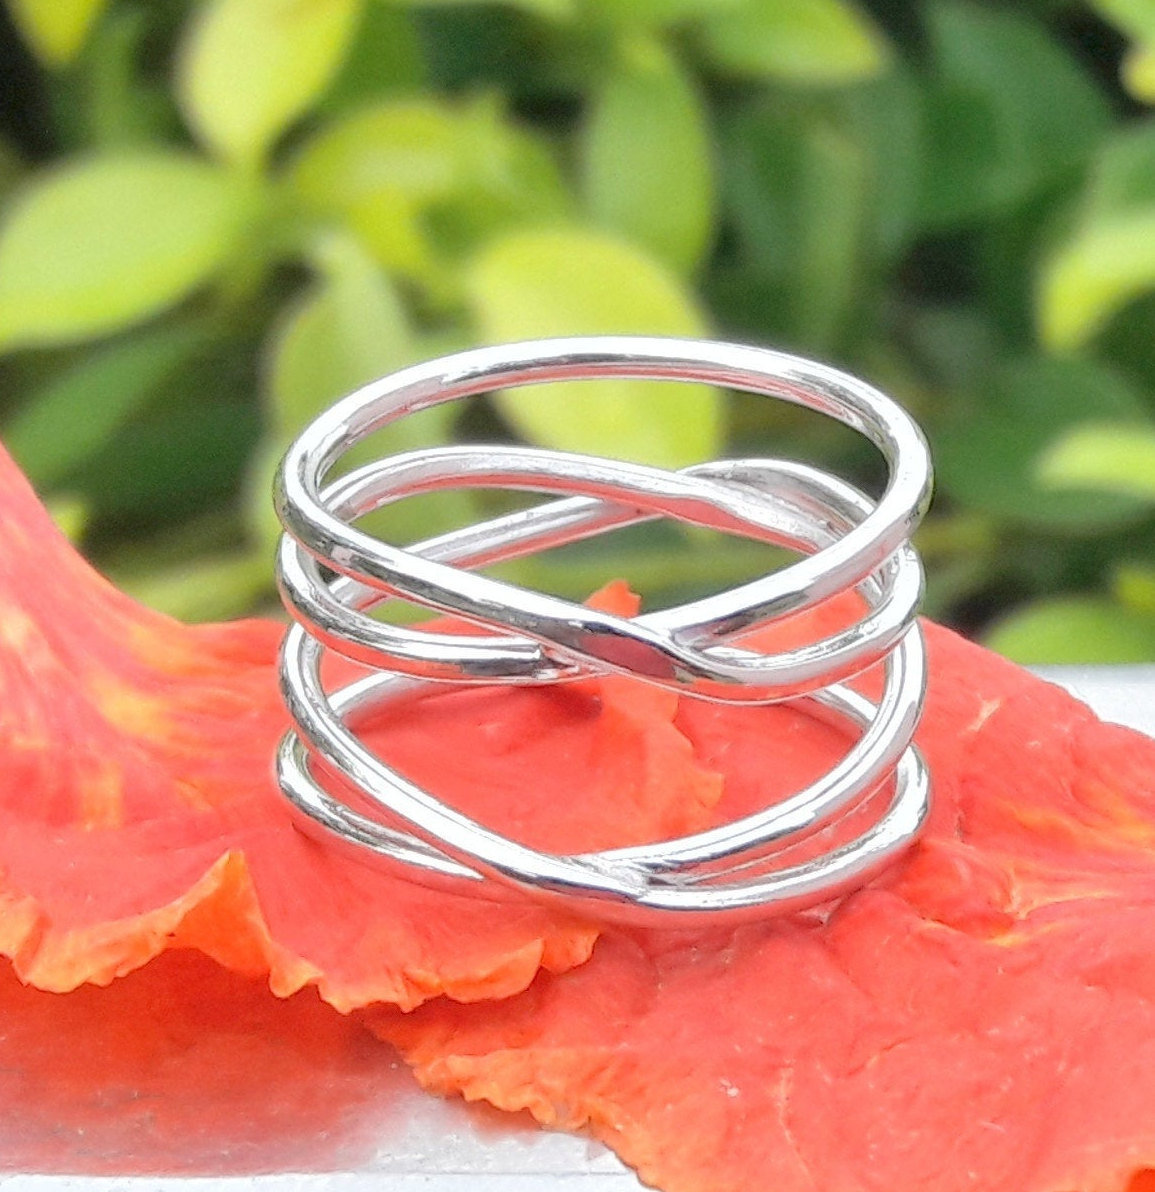 Cage Style Ring, Boho Jewelry, Handmade Jewelry, Engagement Jewelry, Spiral Ring, Promise Ring, Christmas Gift, Gift For Her, Halloween Gift